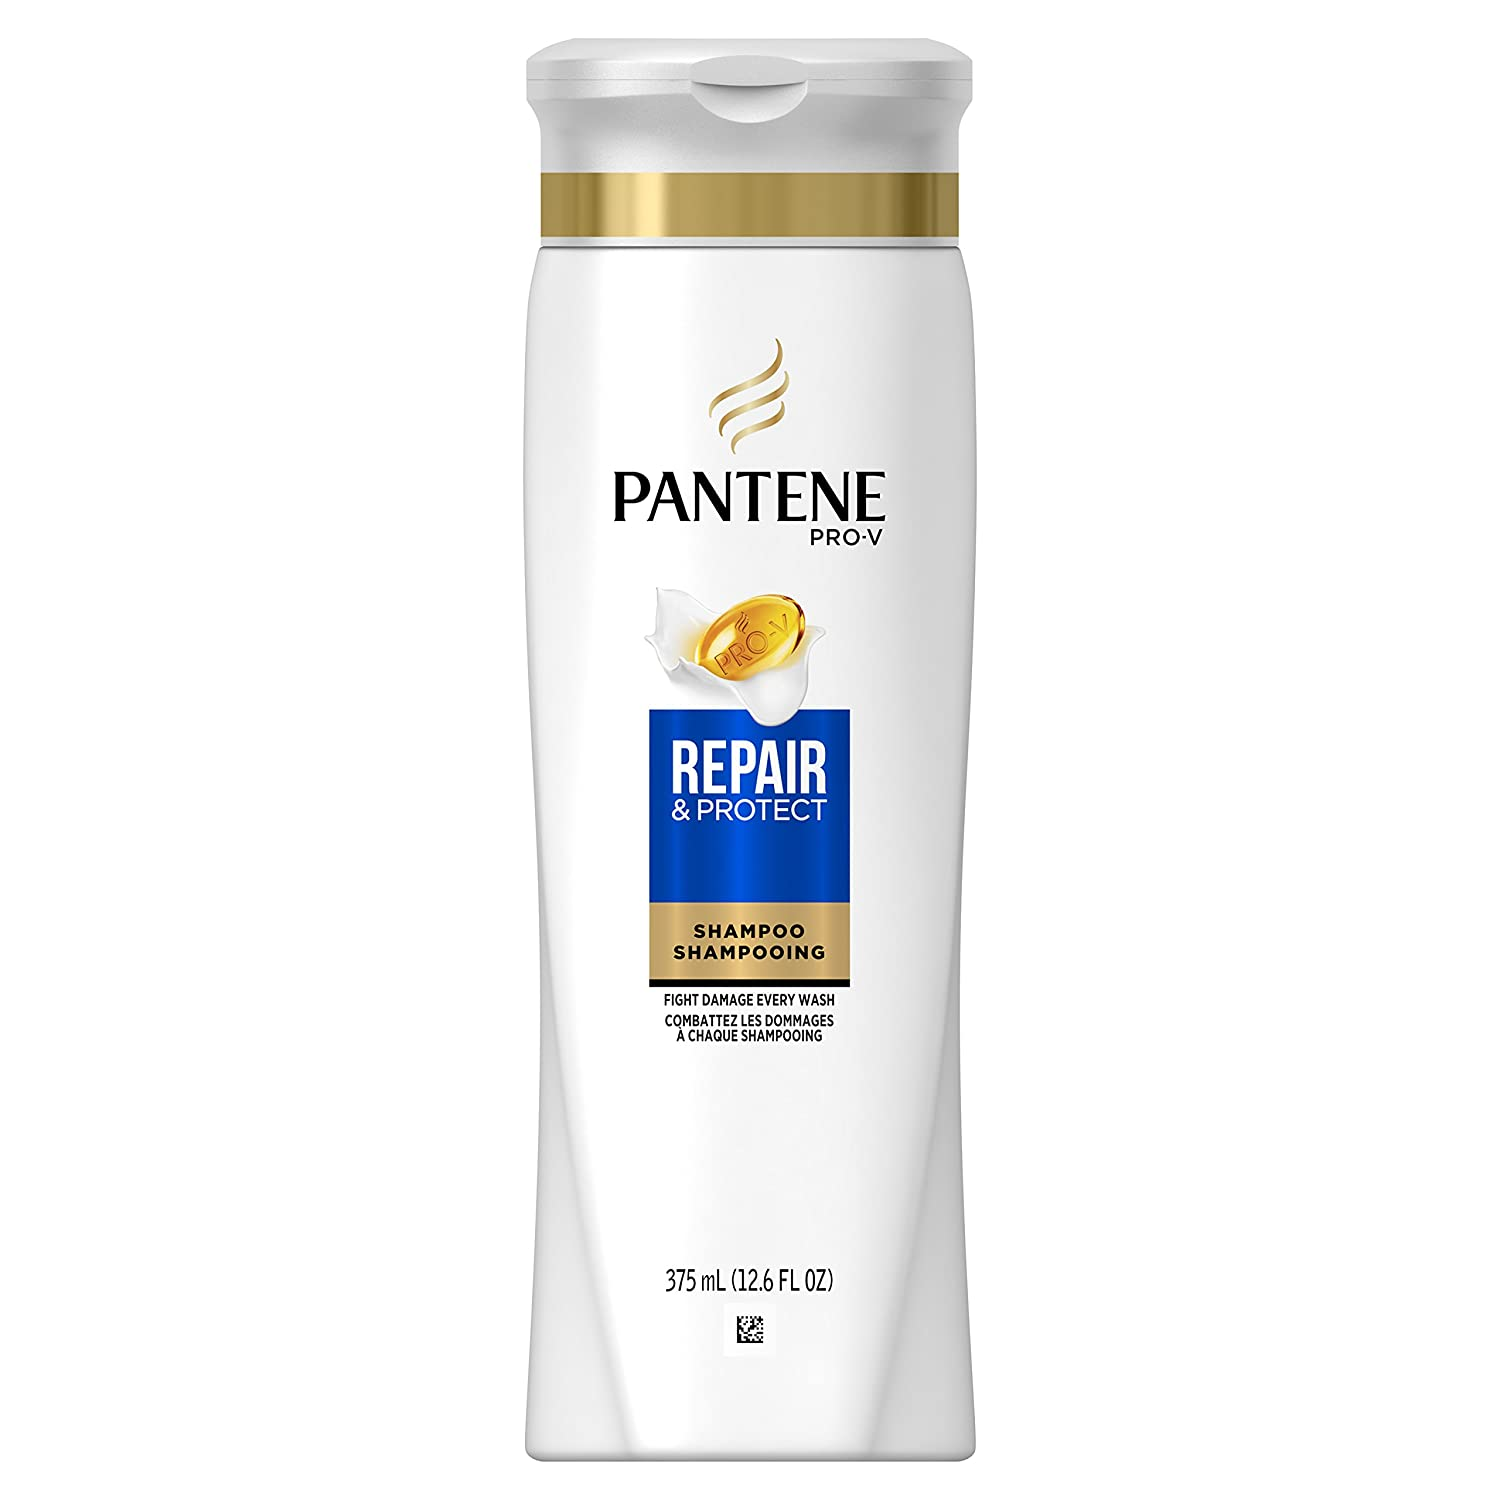 Pantene Pro-V Repair and Protect Shampoo, 595ml Procter and Gamble